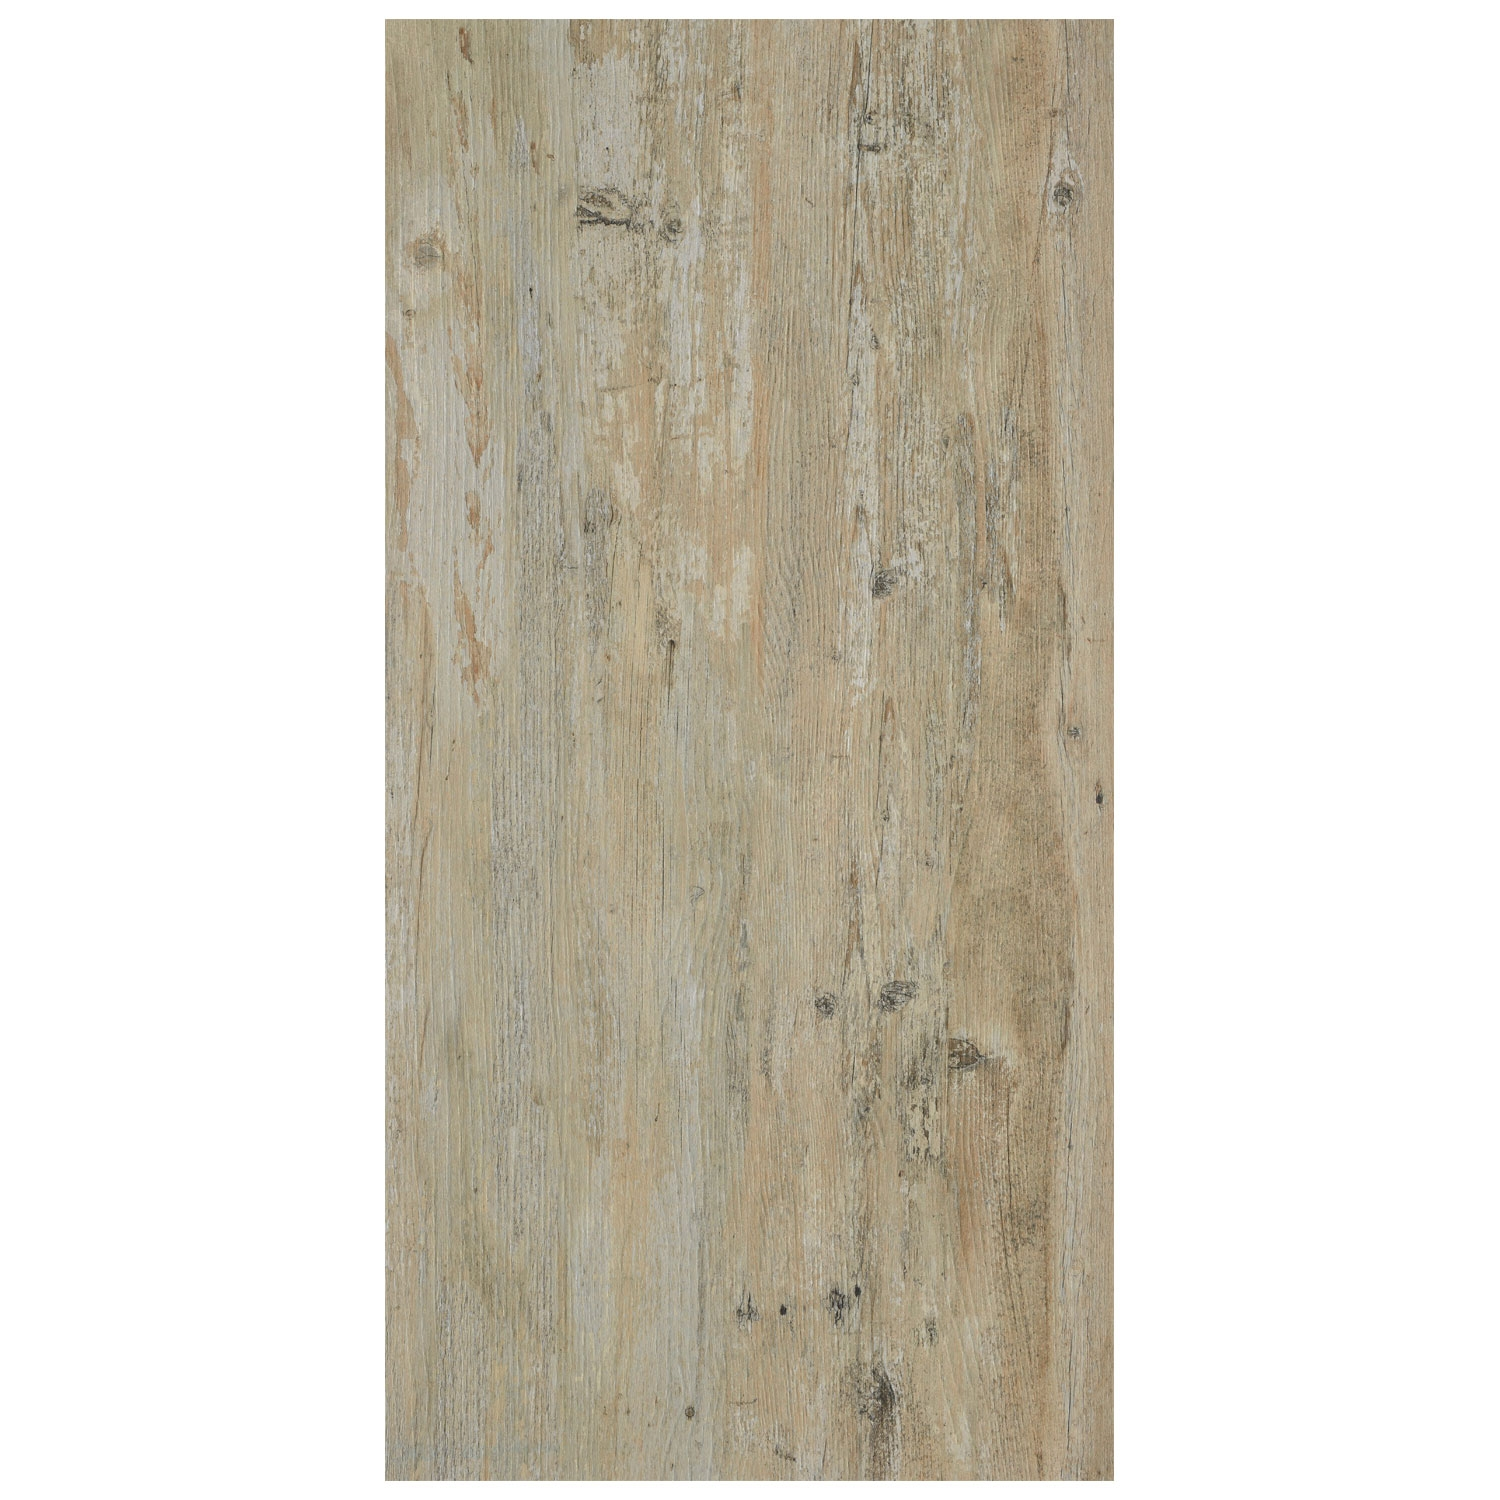 RAK Hemlock Porcelain Tile - 1200mm H x 195mm W - Maple (Box of 4)